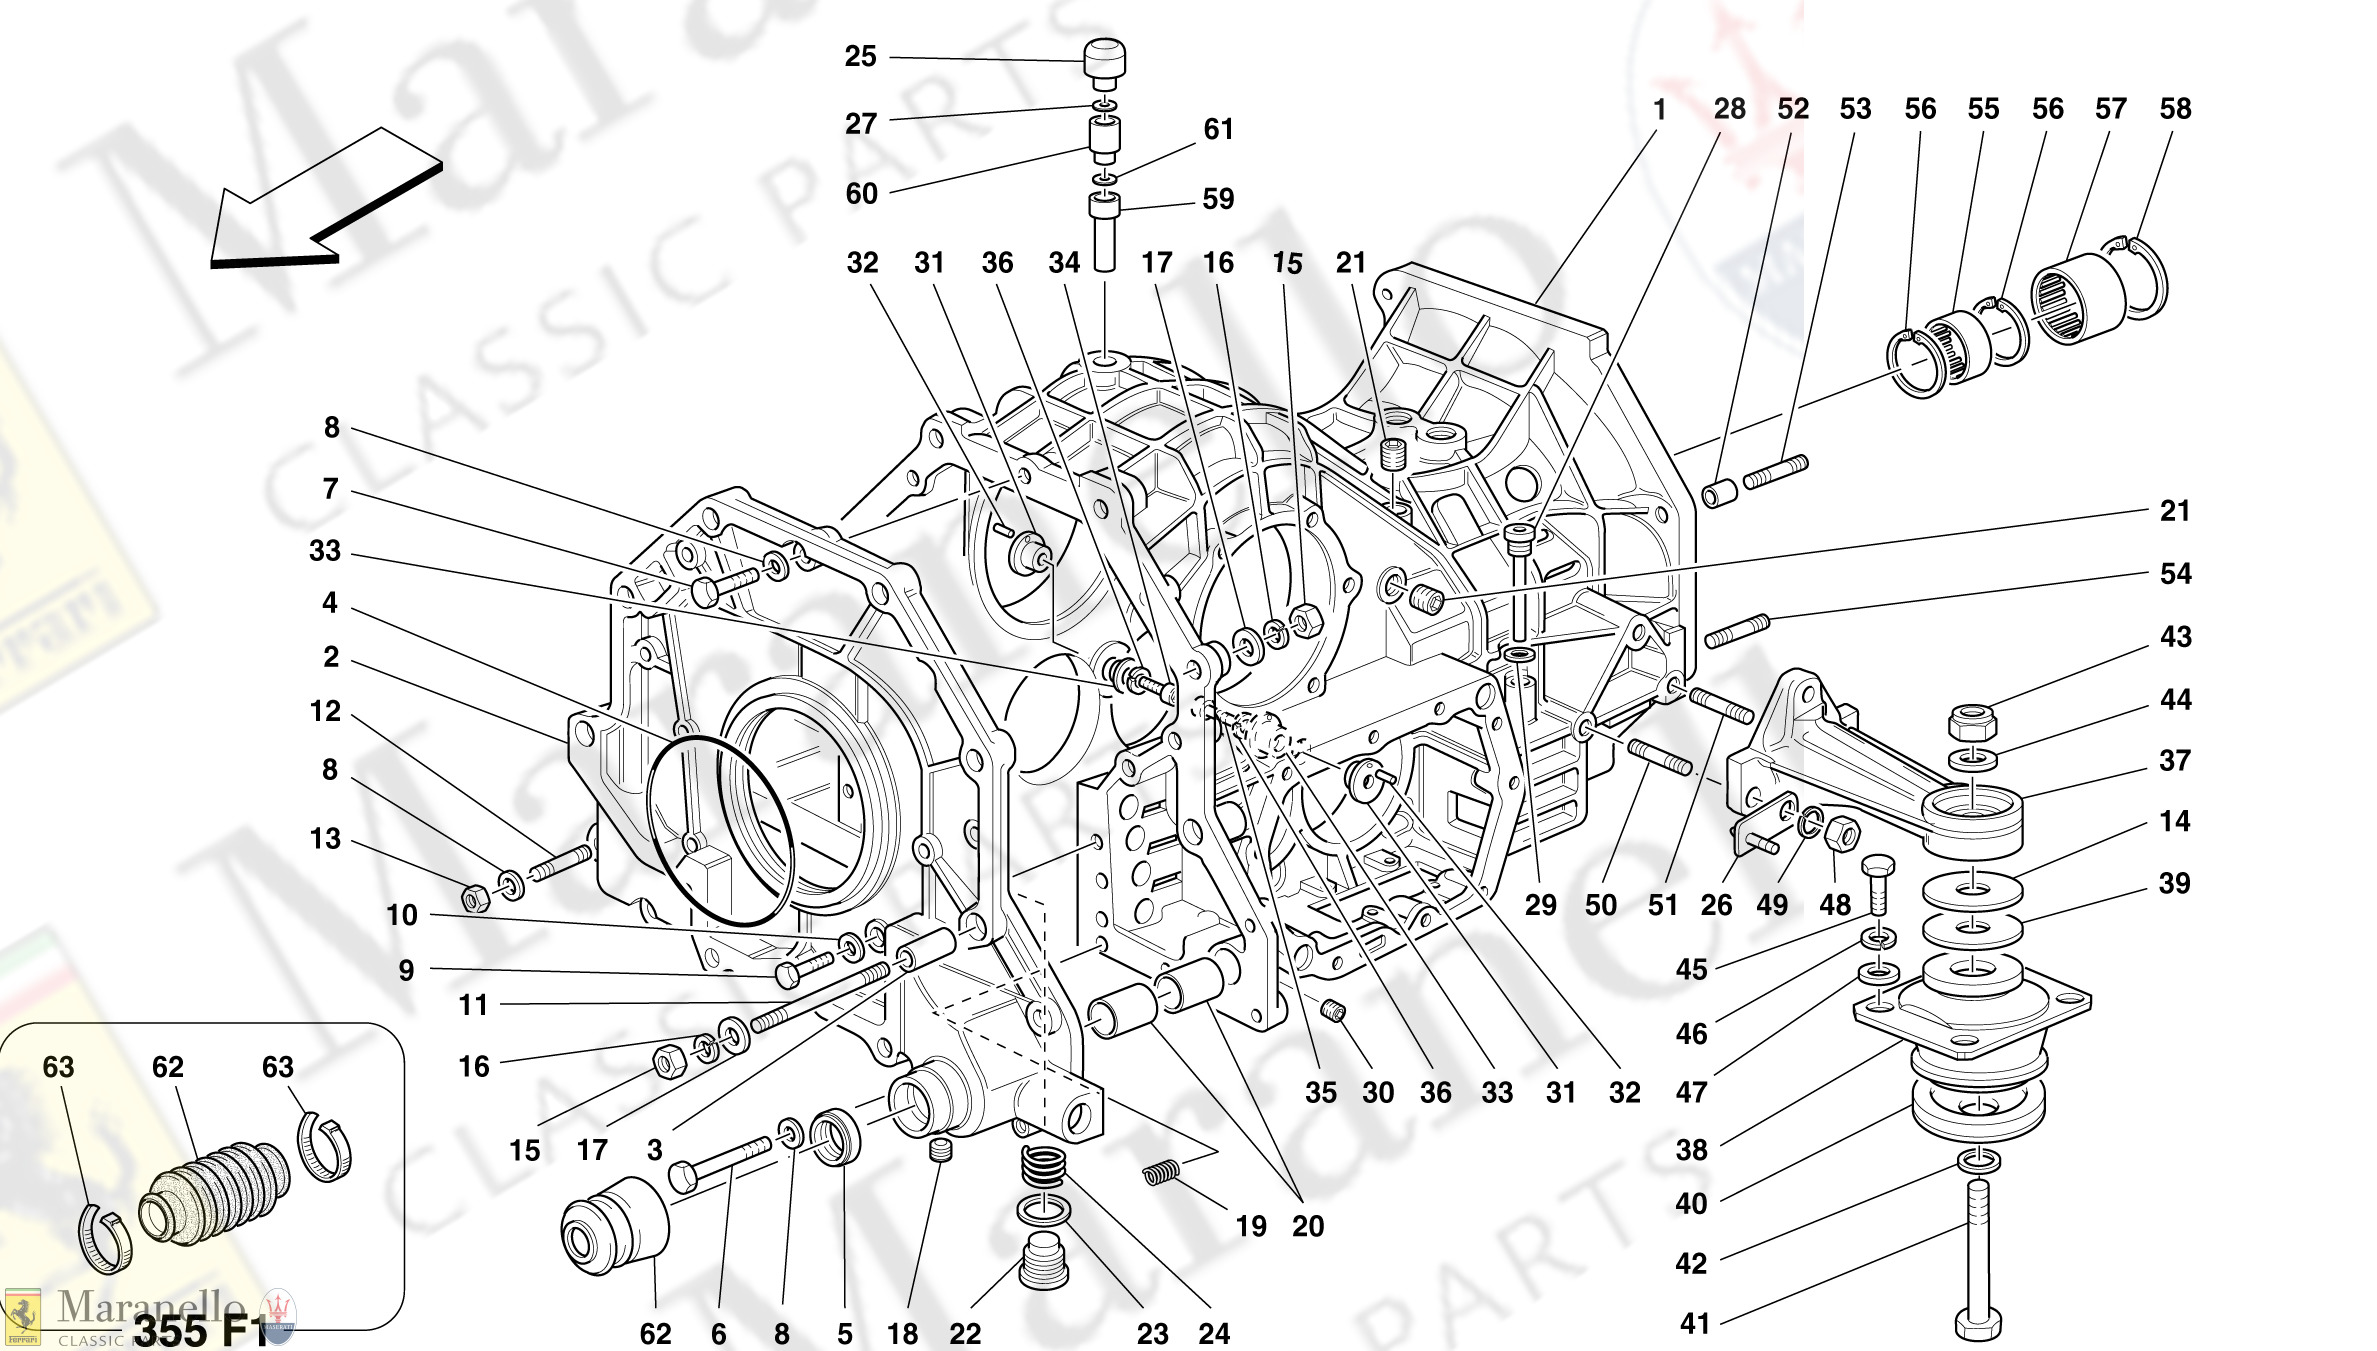 030 - Gearbox/Differential Housing And Intermediate Casing